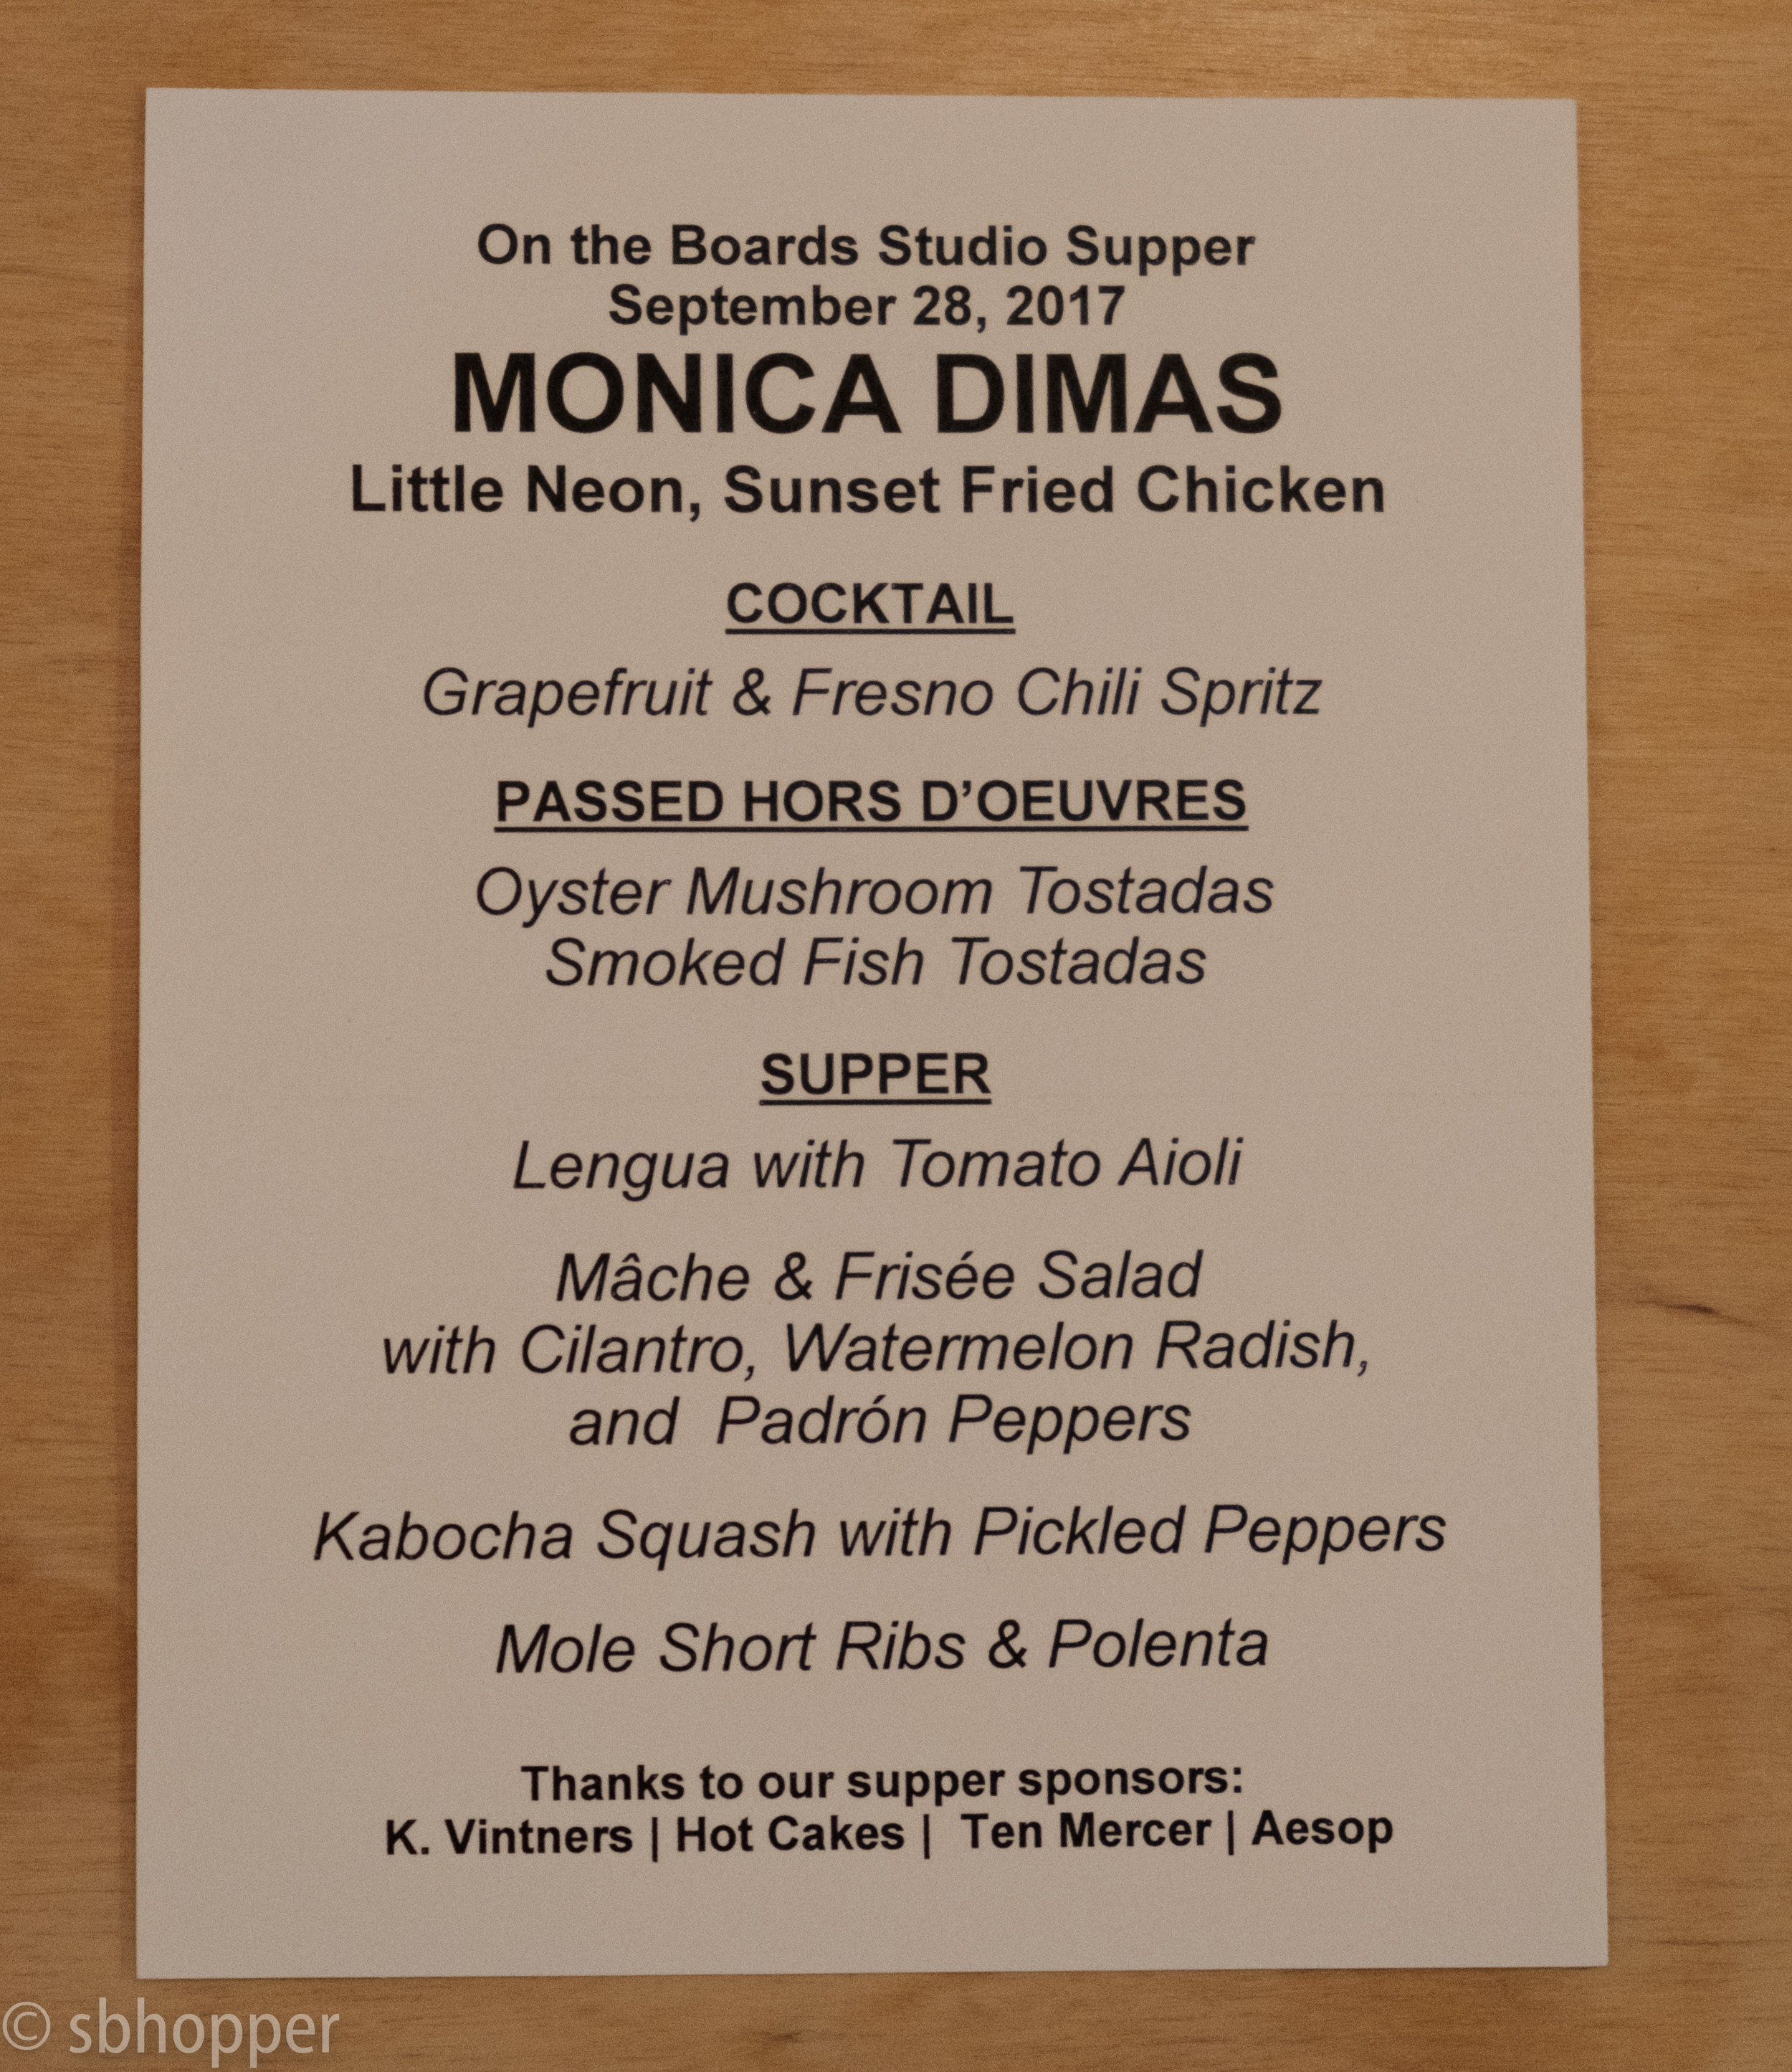 Menu prepared by Seattle Chef Monica Dimas for On the Boards' 28 September 2017 Studio Supper featuring Burning Doors by Belarus Free Theatre.